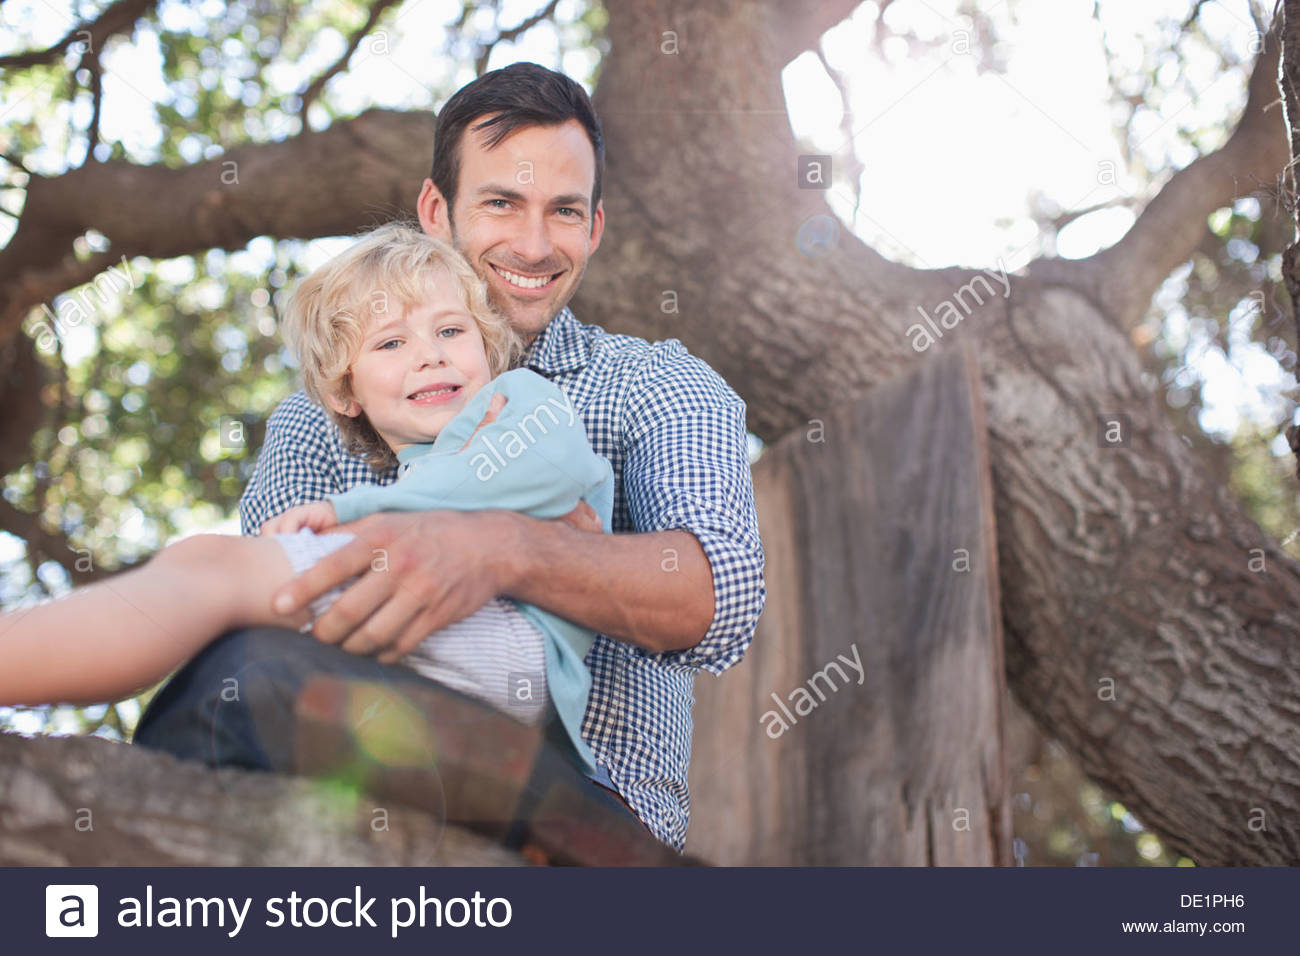 Father and son sitting in tree - Stock Image